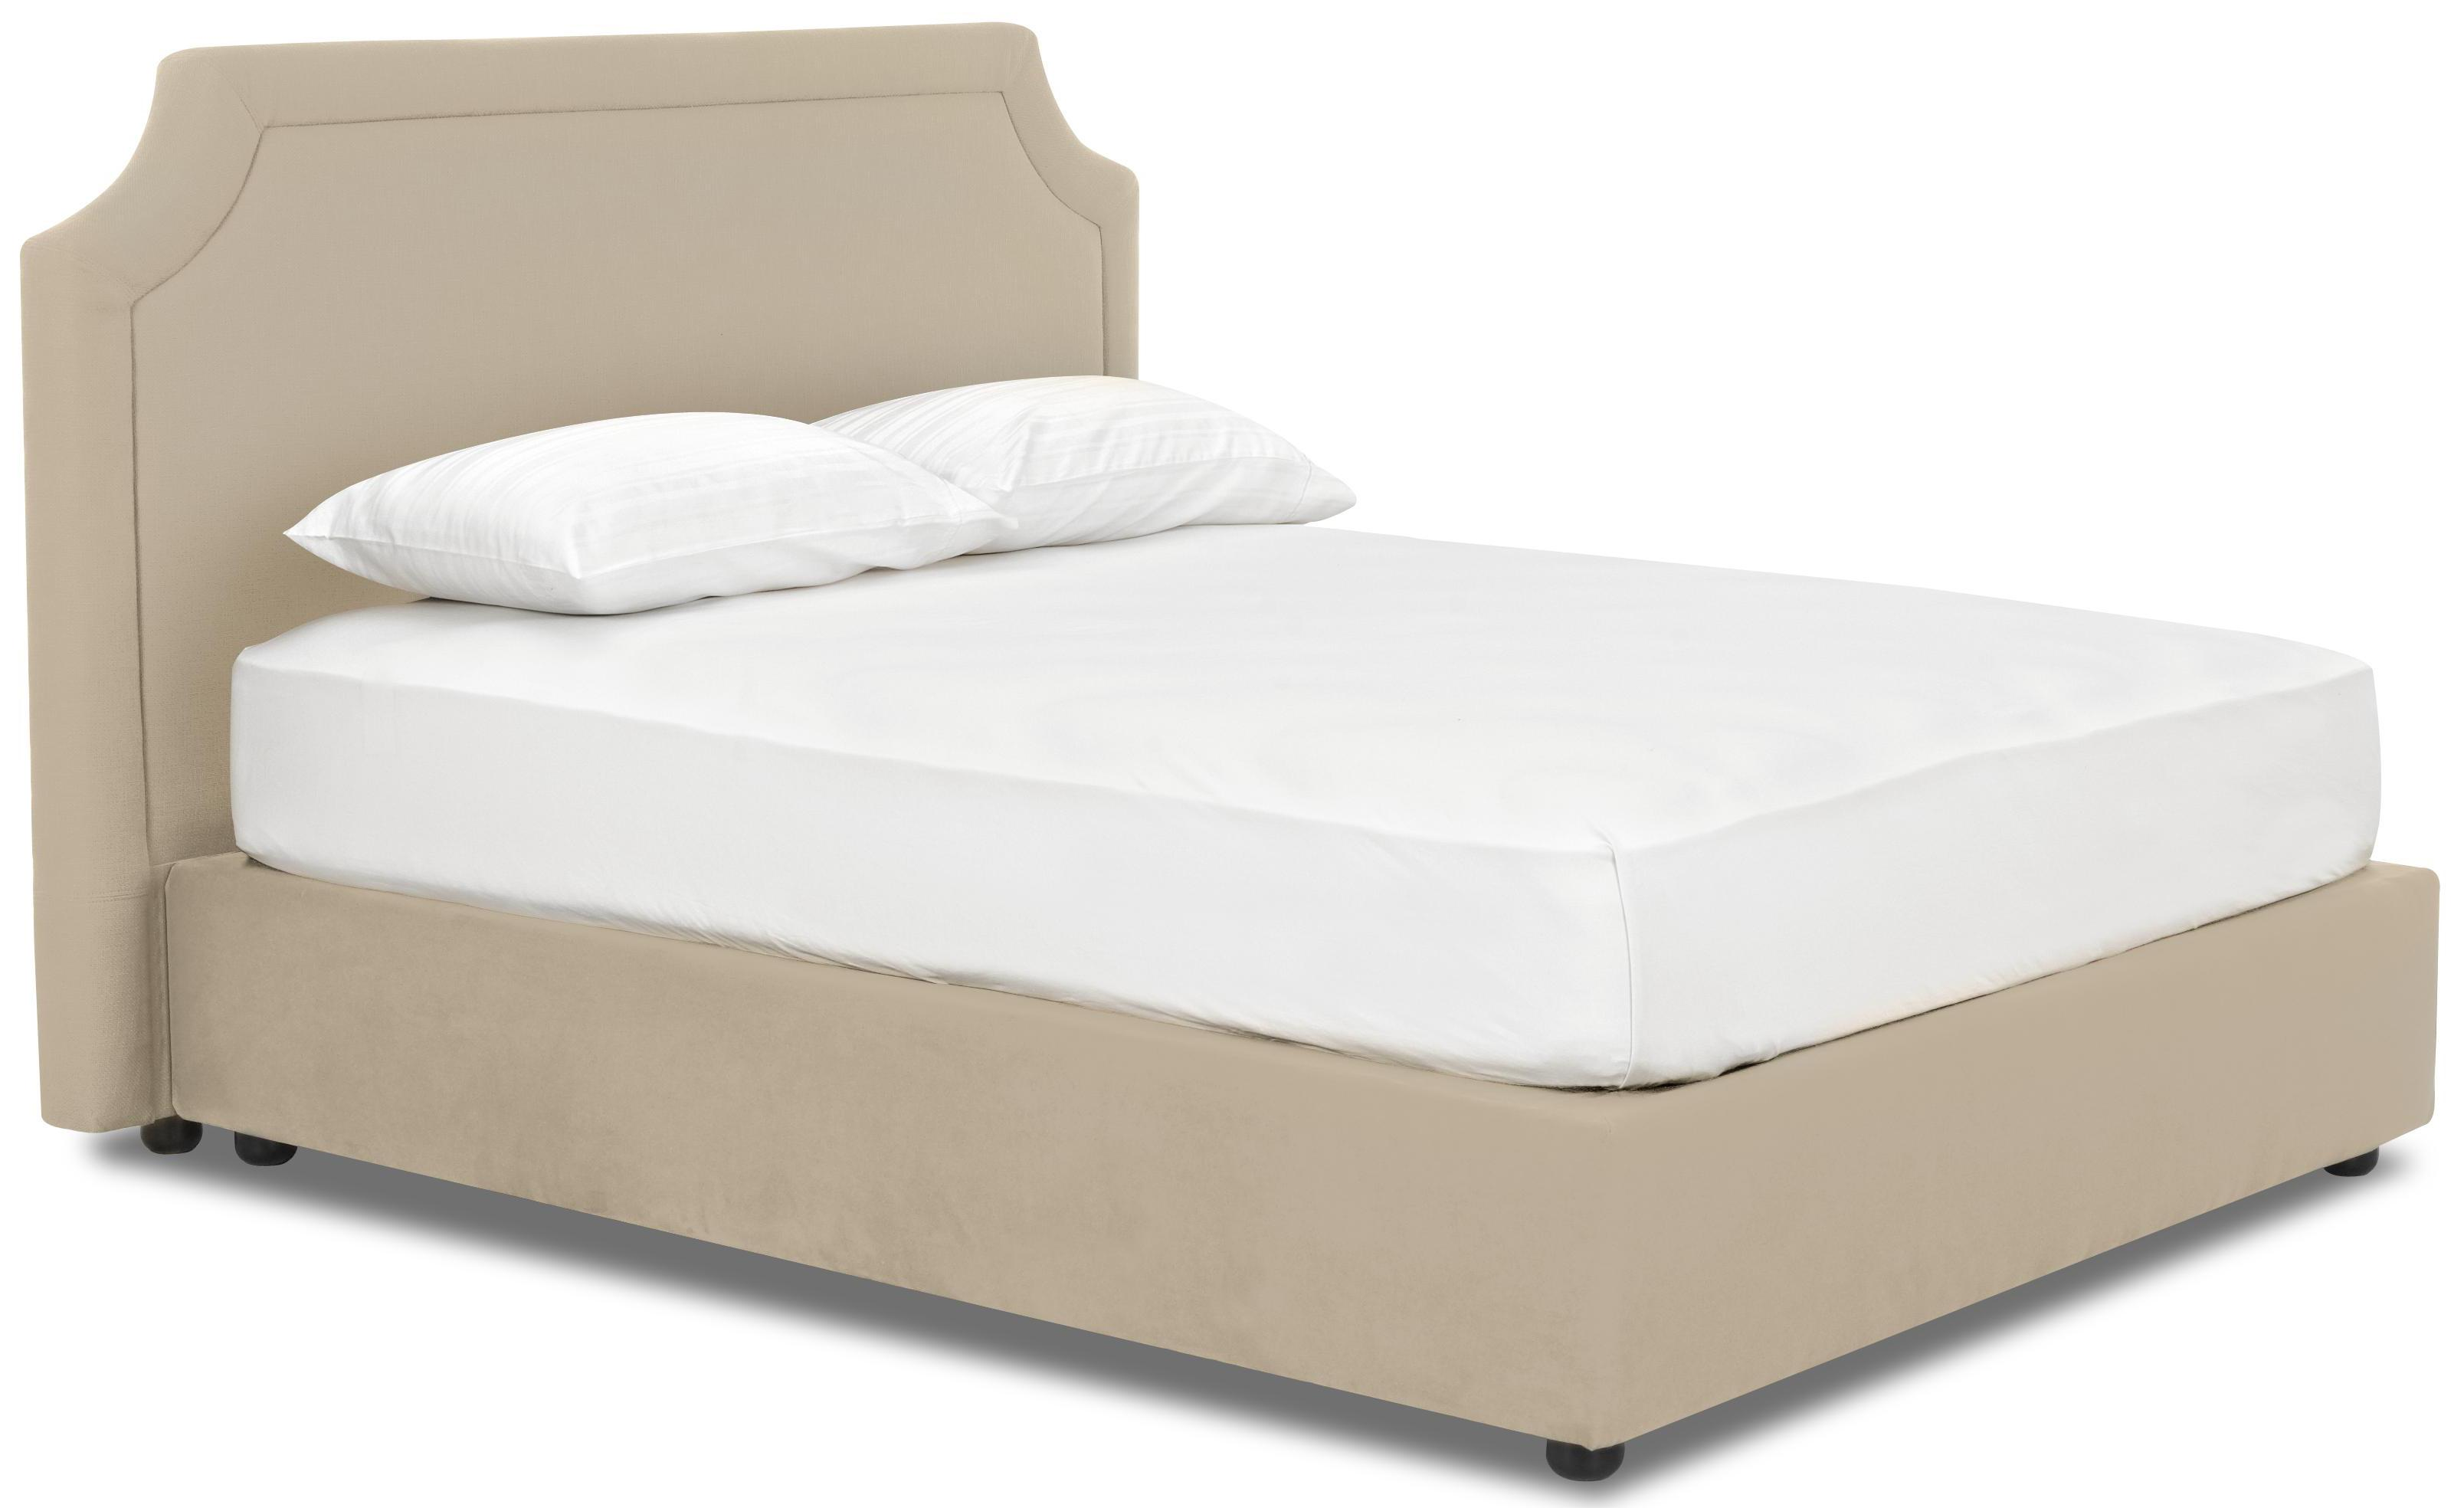 Queen Upholstered Platform Bed By Klaussner